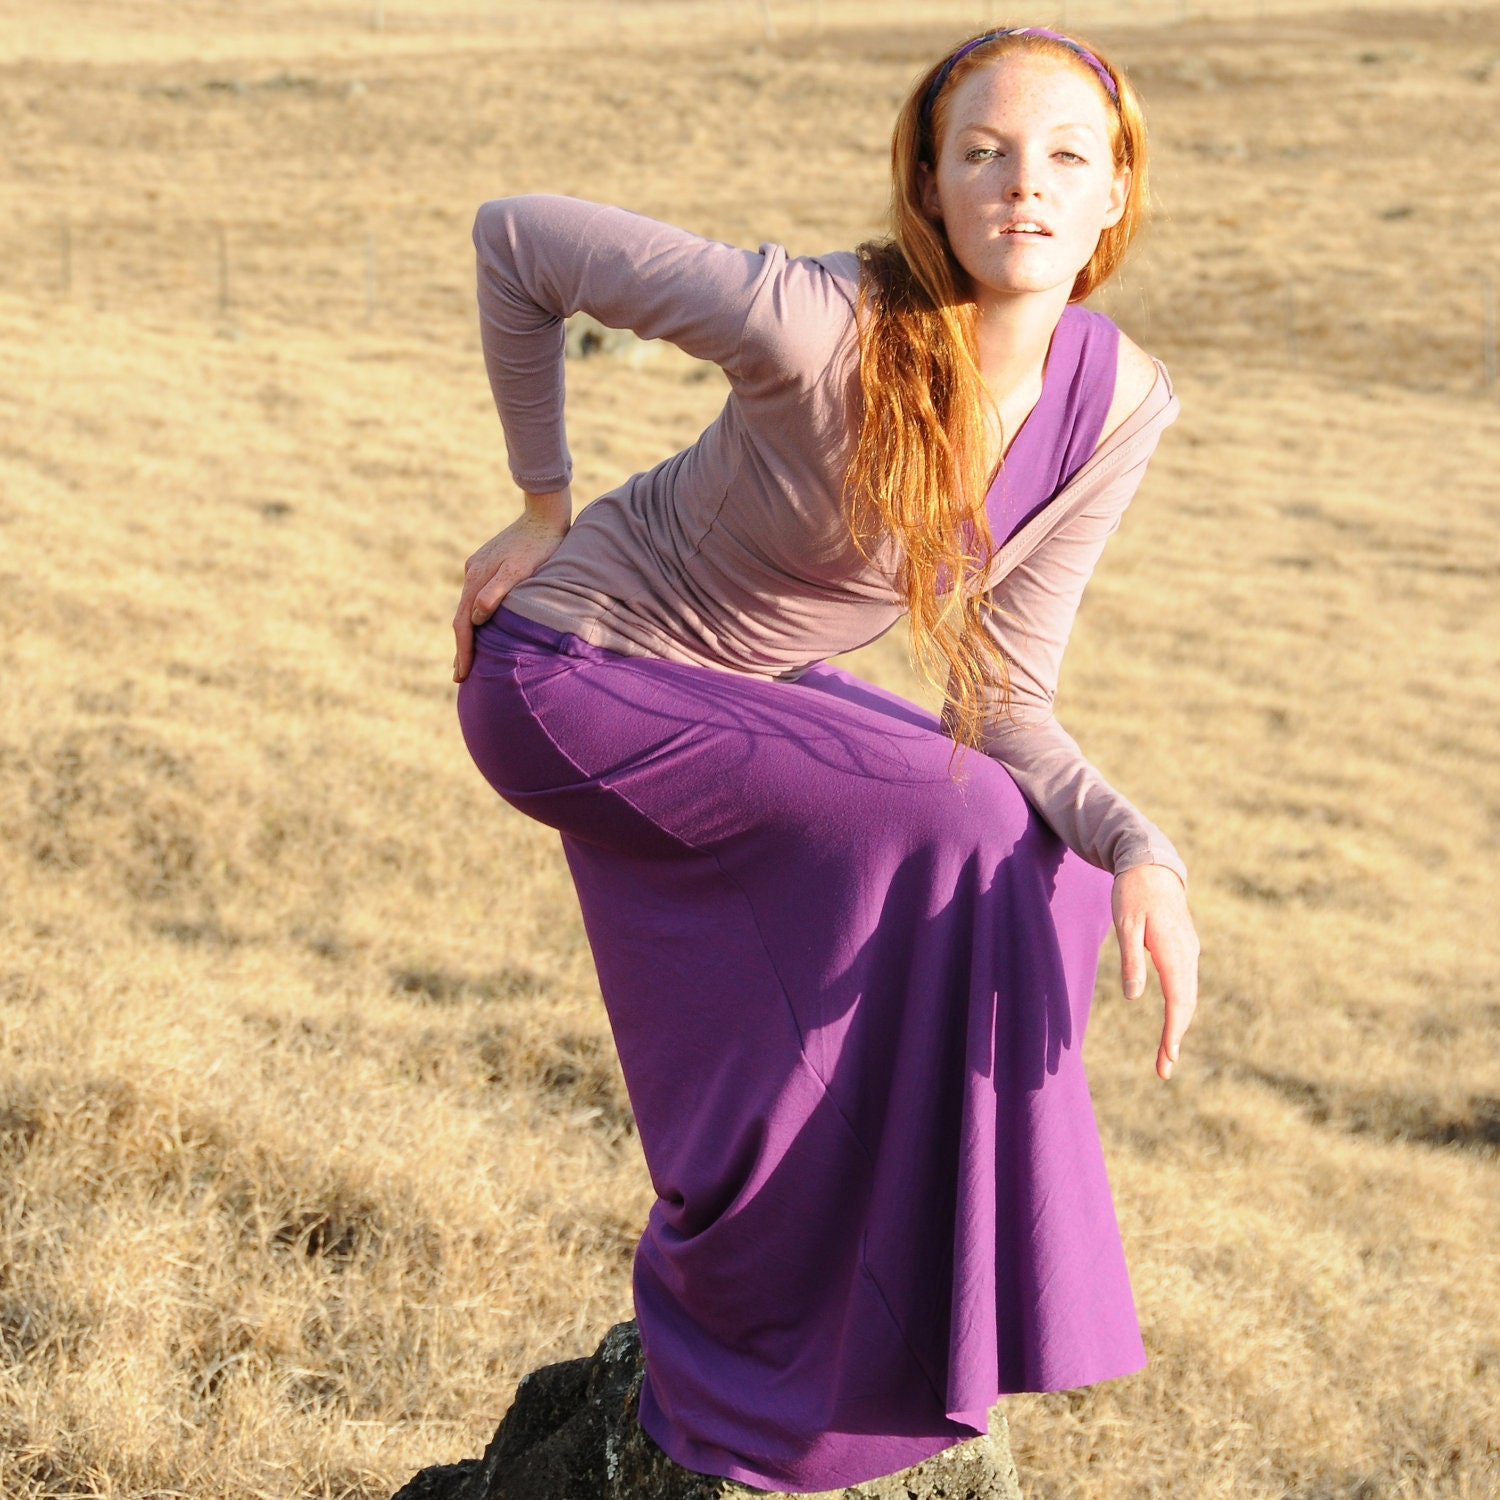 Purple Fashion Maxi Skirt Long Skirt in Phlox Purple Plum Organic Cotton Eco Friendly Women